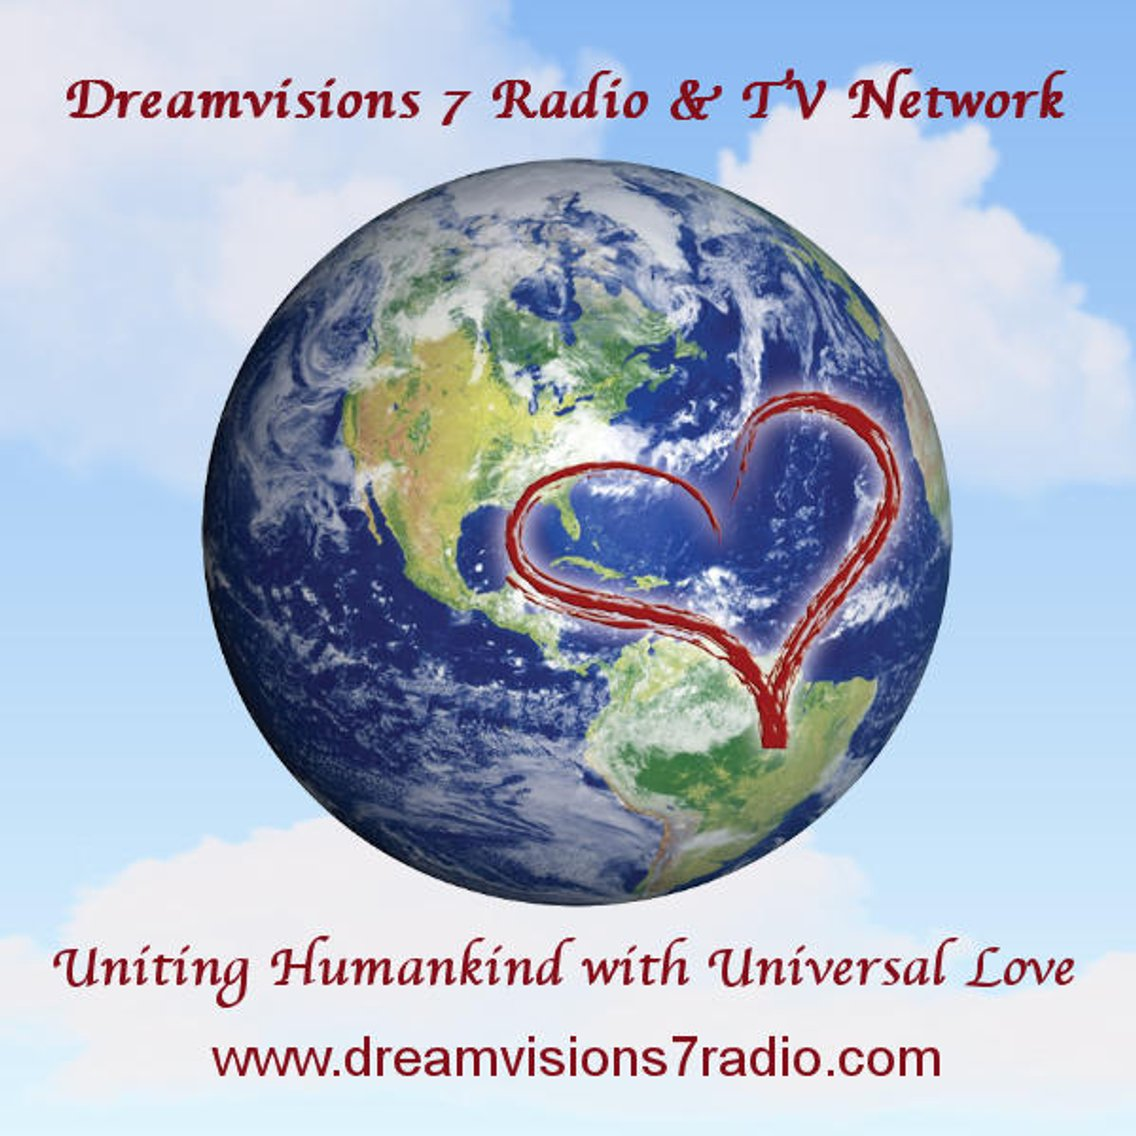 Dreamvisions 7 Radio Network - Cover Image